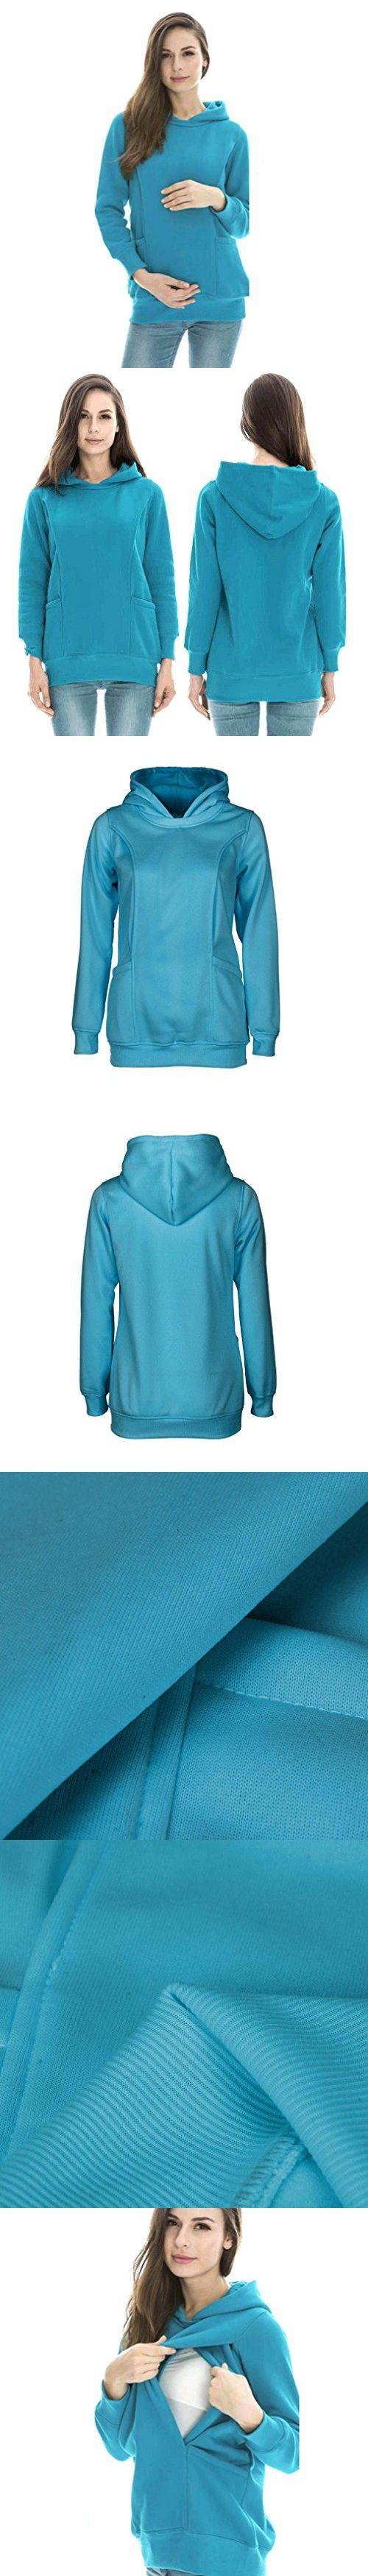 Women's Sweater,Neartime Maternity Nursing Clothes Baby Breastfeeding Clothing Pregnancy Hoodie (L, Blue)